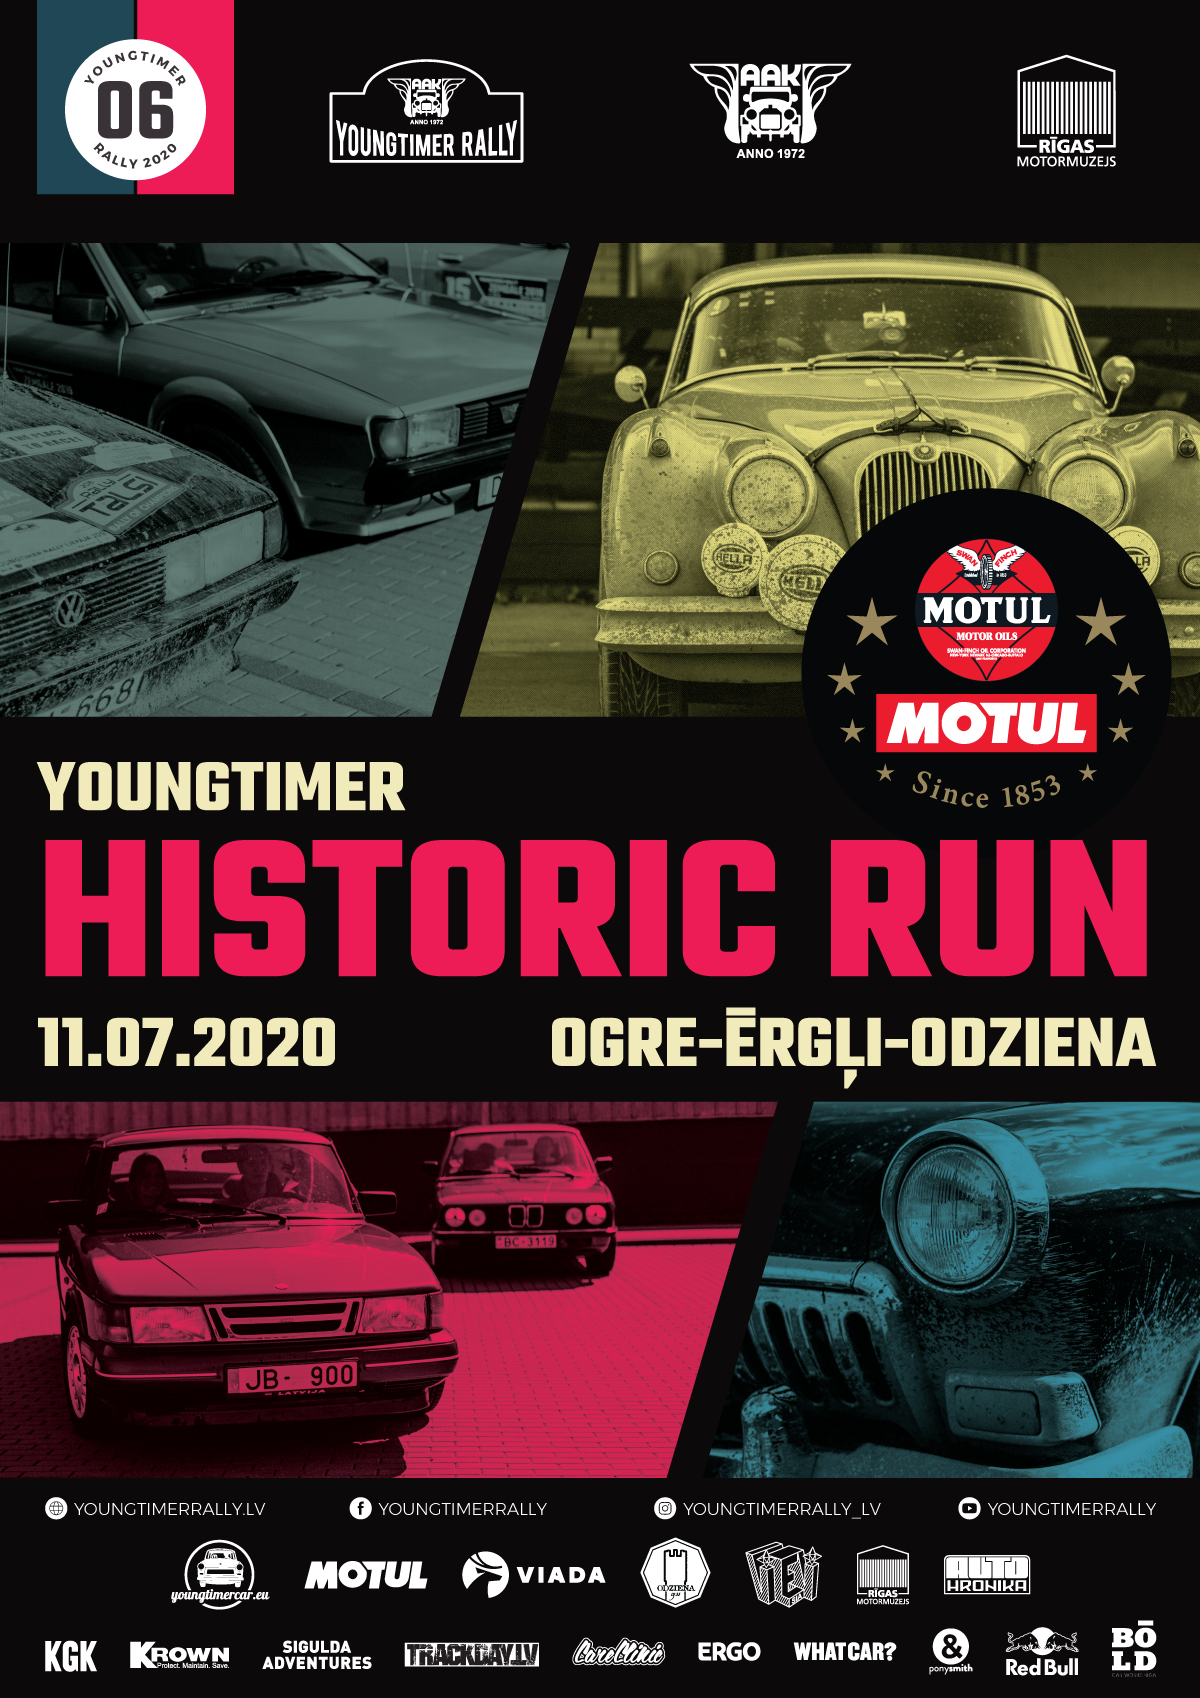 Youngtimer & Motul Historic Run 2020